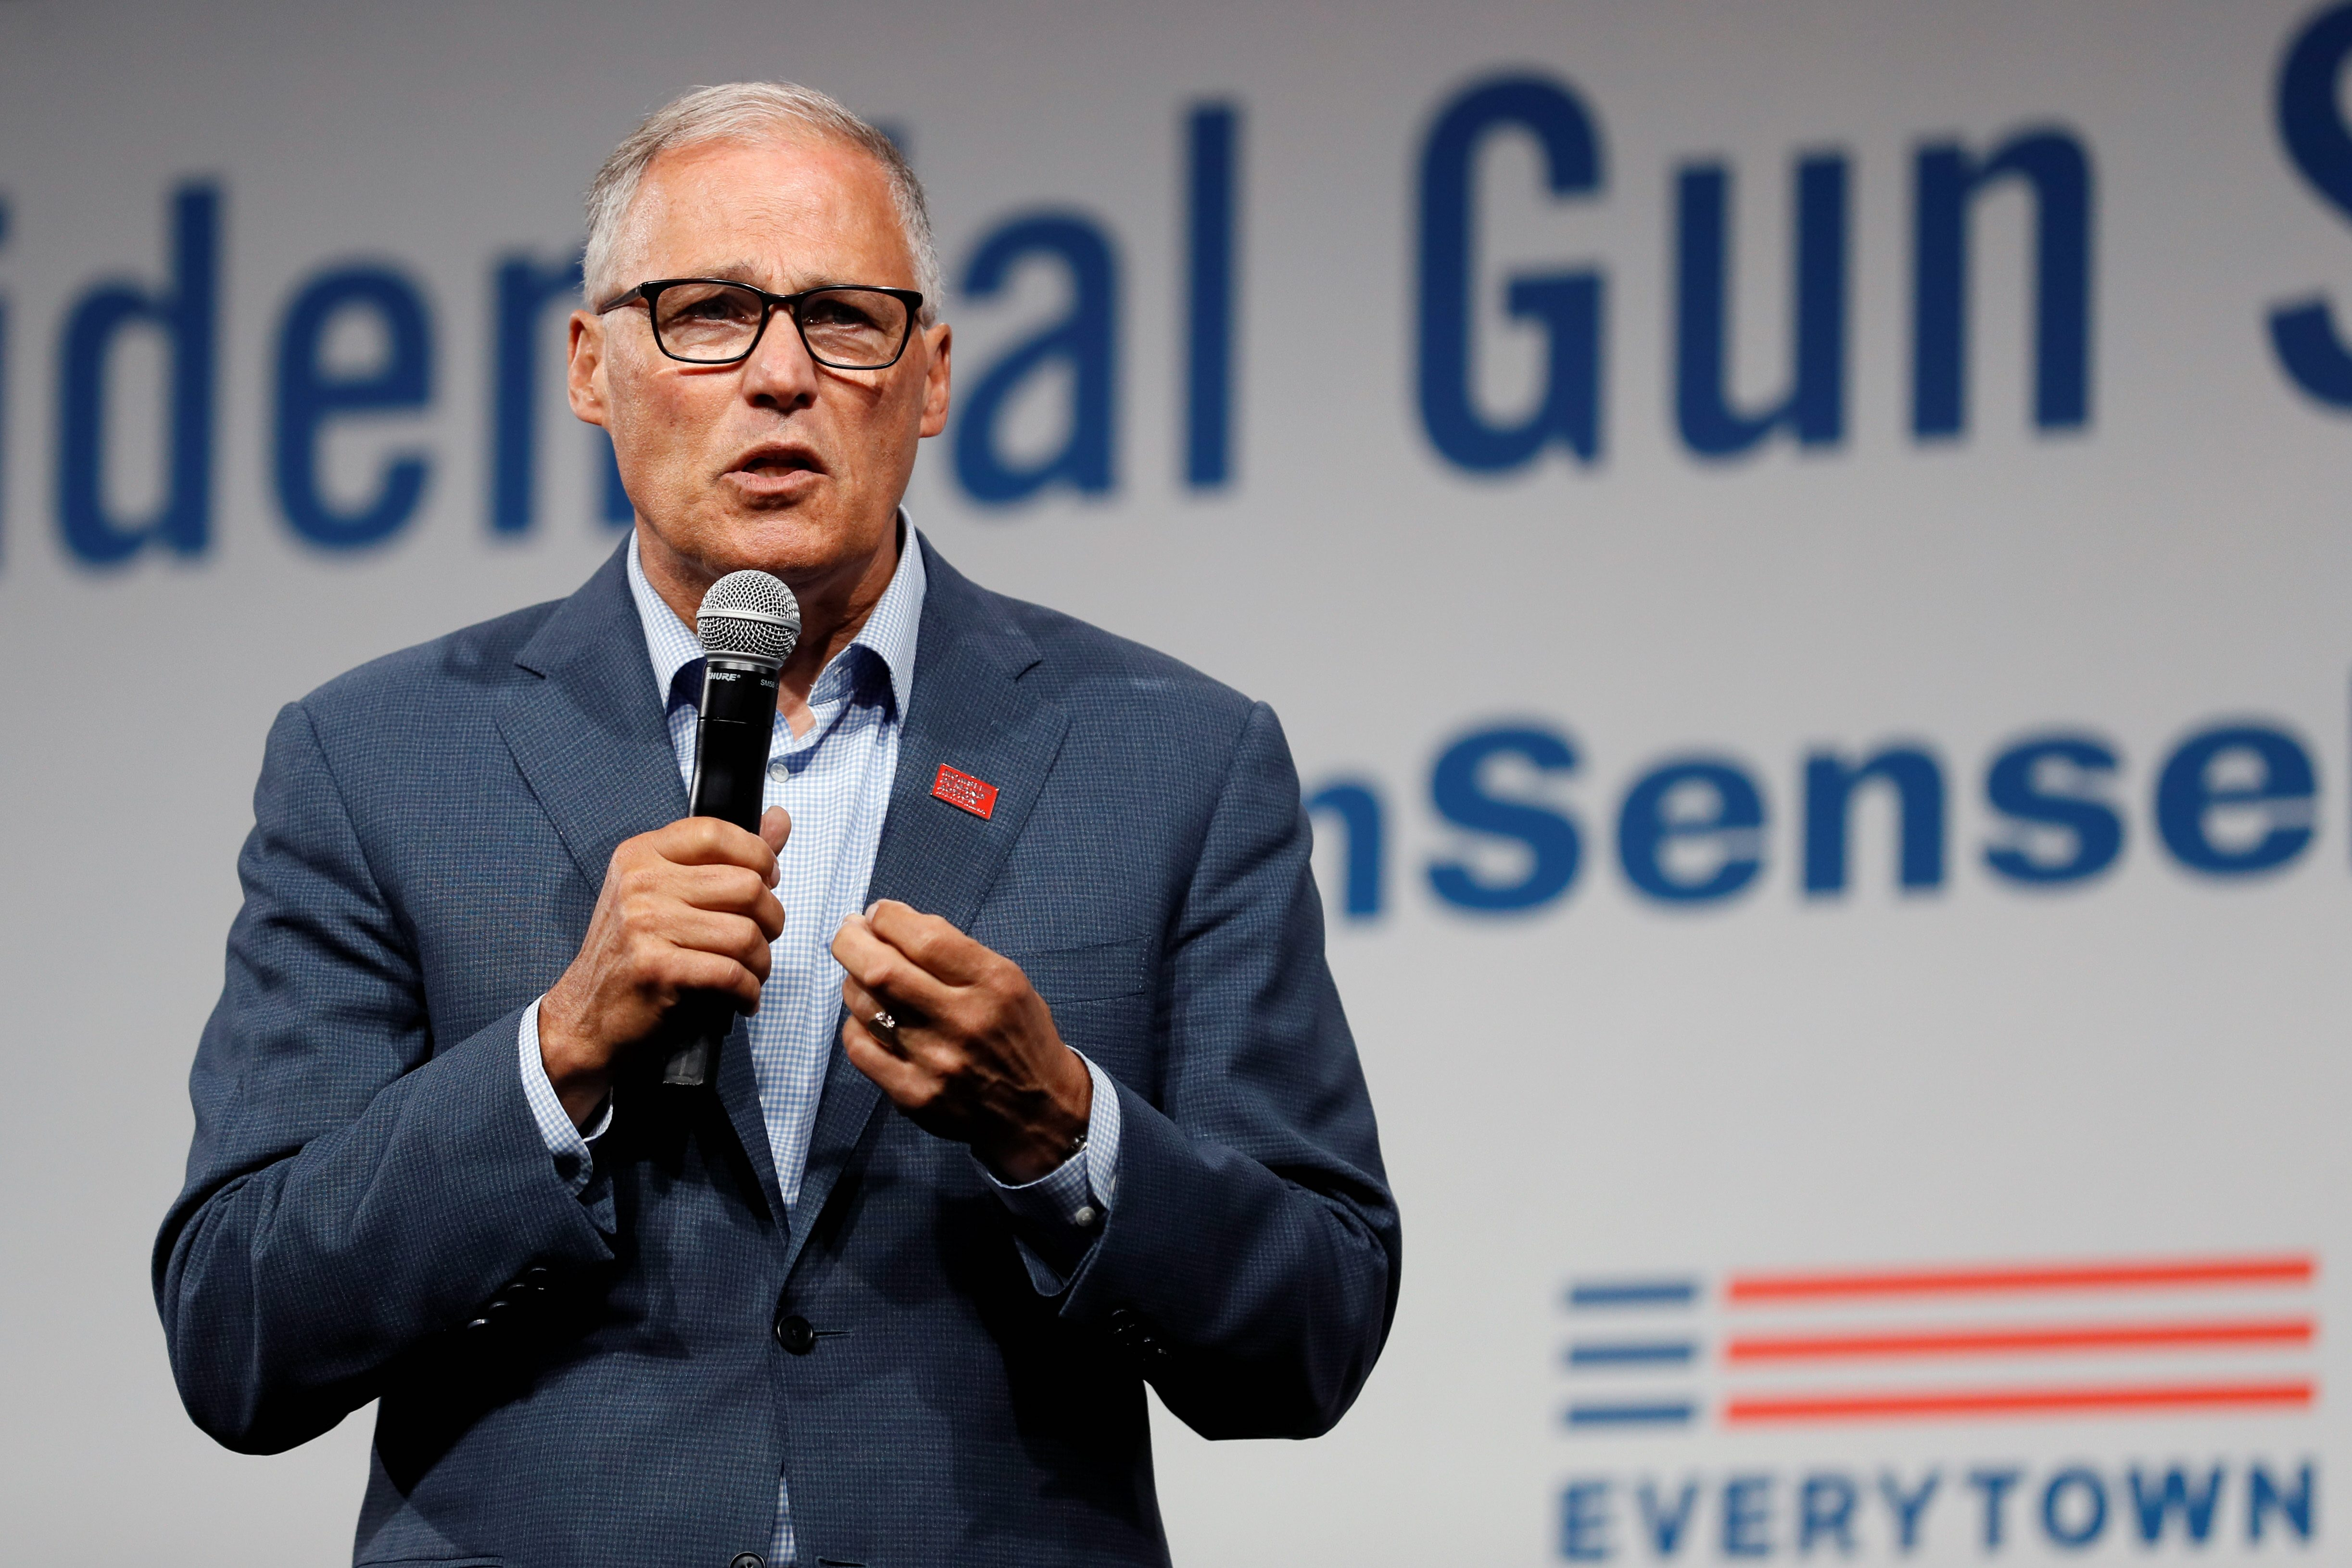 Jay Inslee nearing donor threshold to qualify for third presidential d